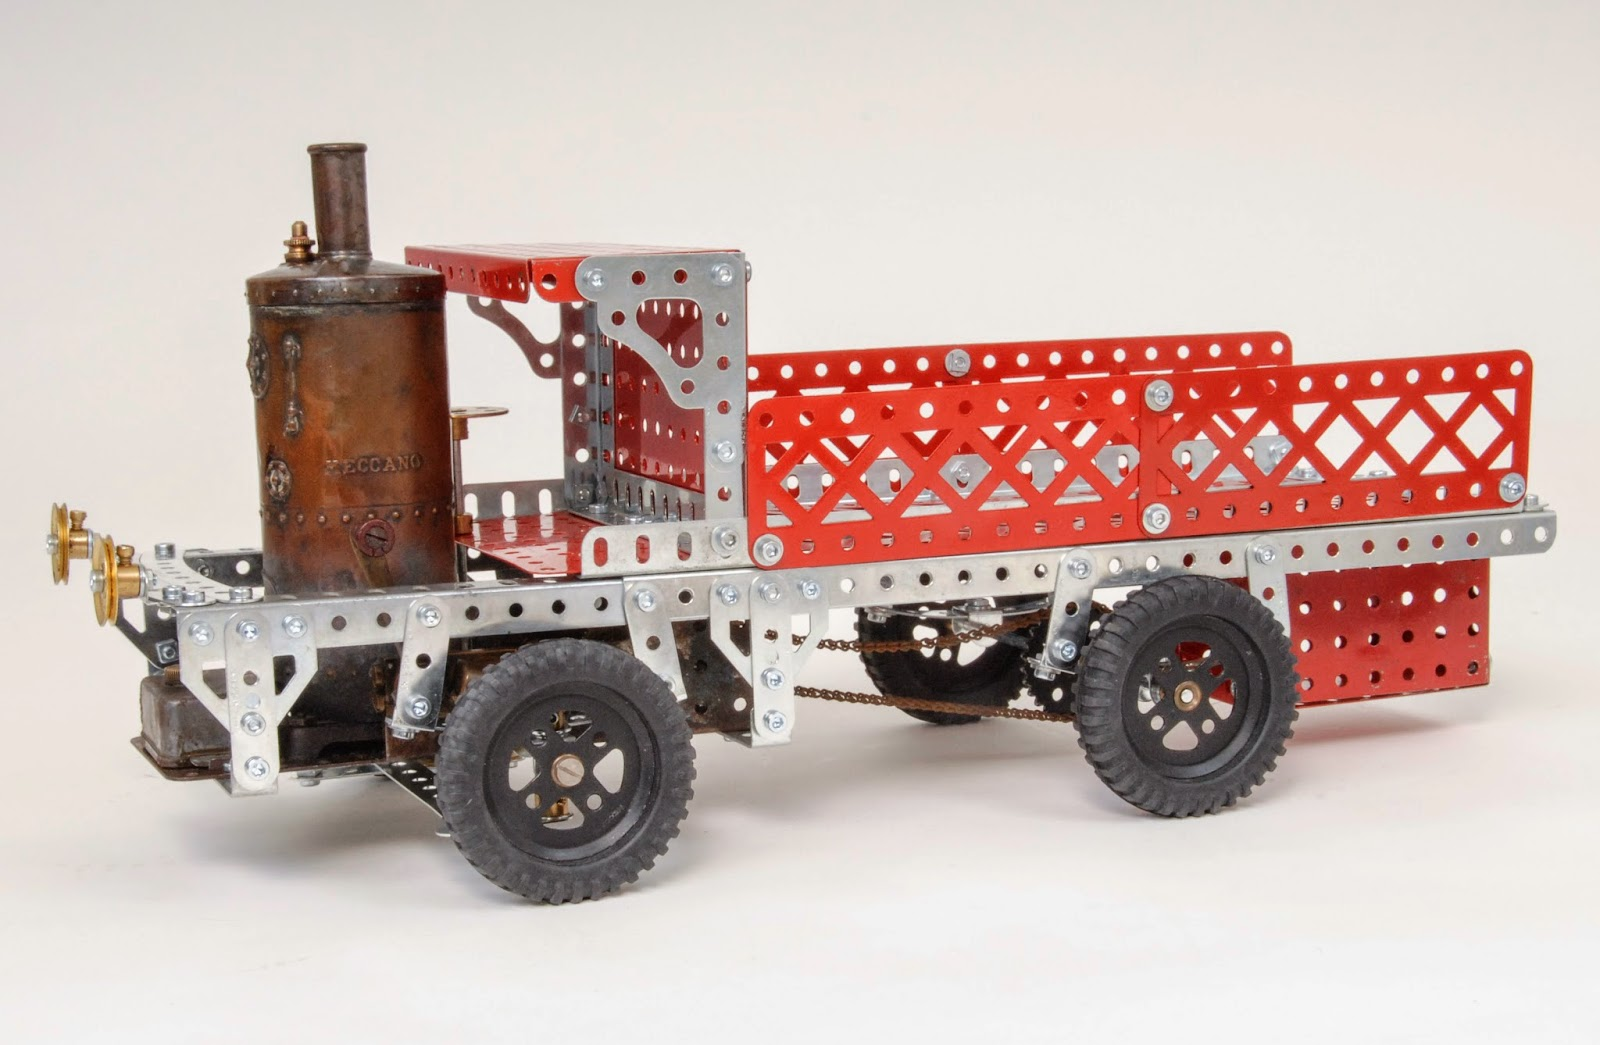 meccano steam engine instructions